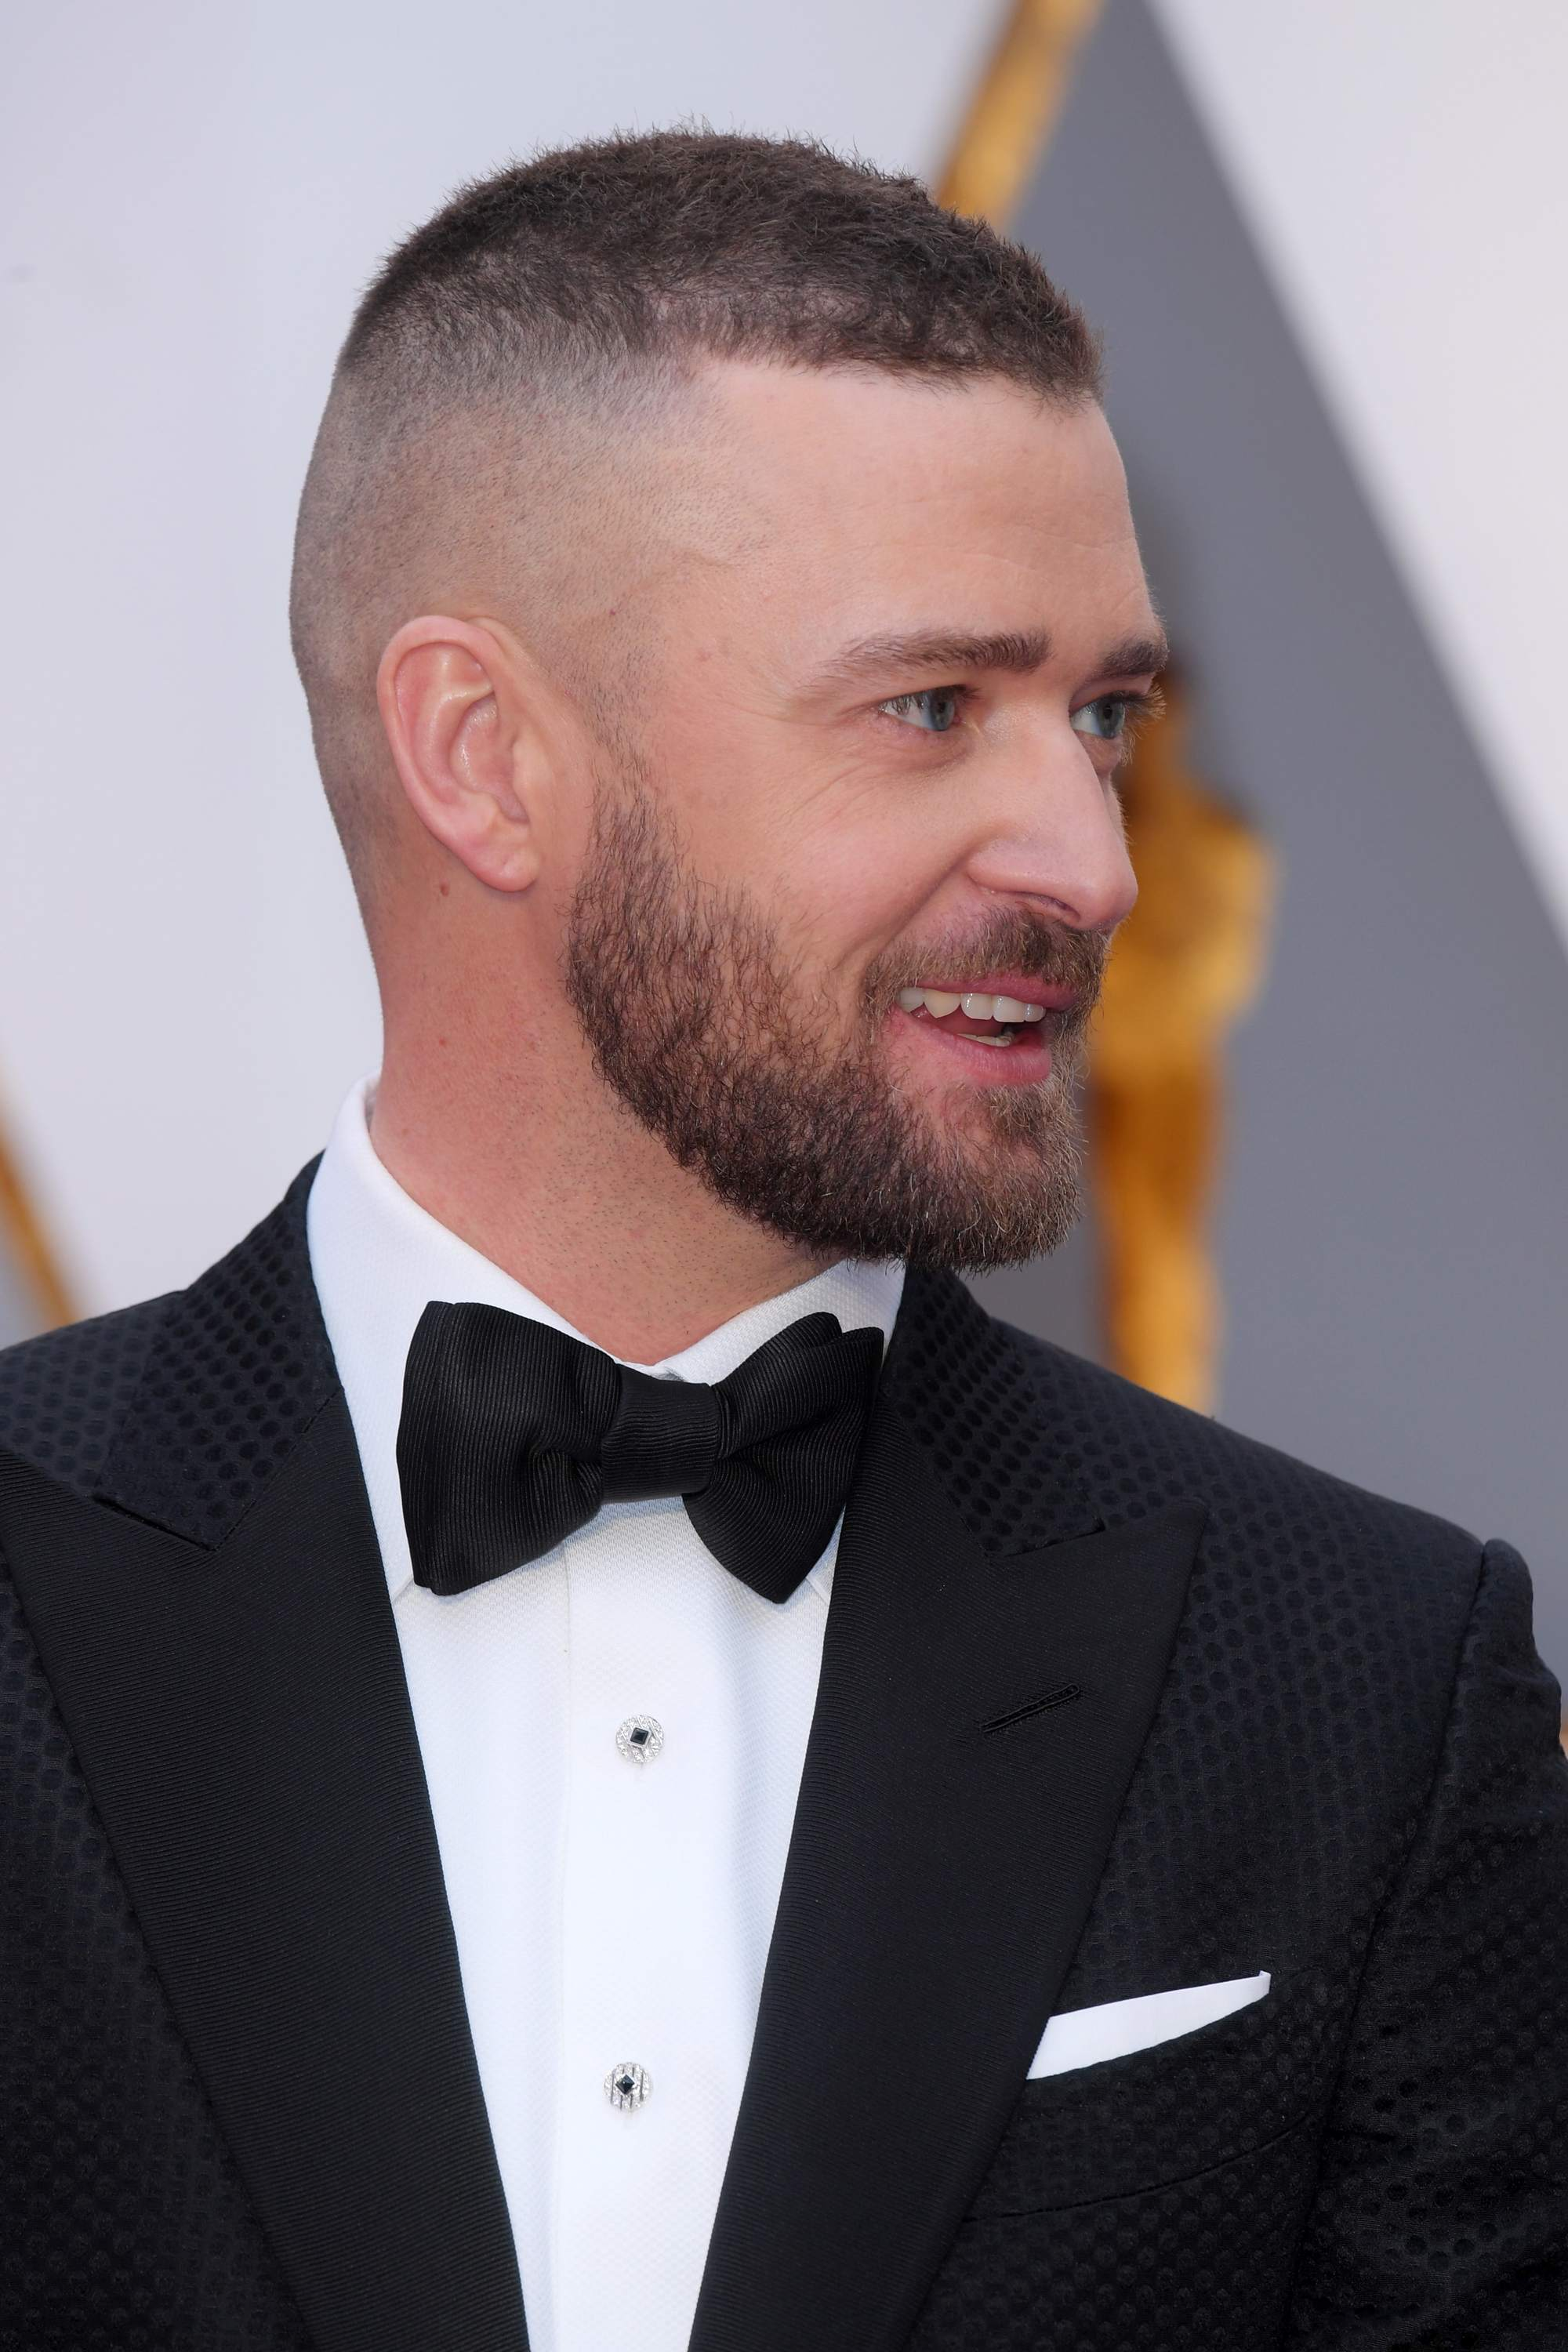 Buzz cut hair: 11 looks that'll have you reaching for the